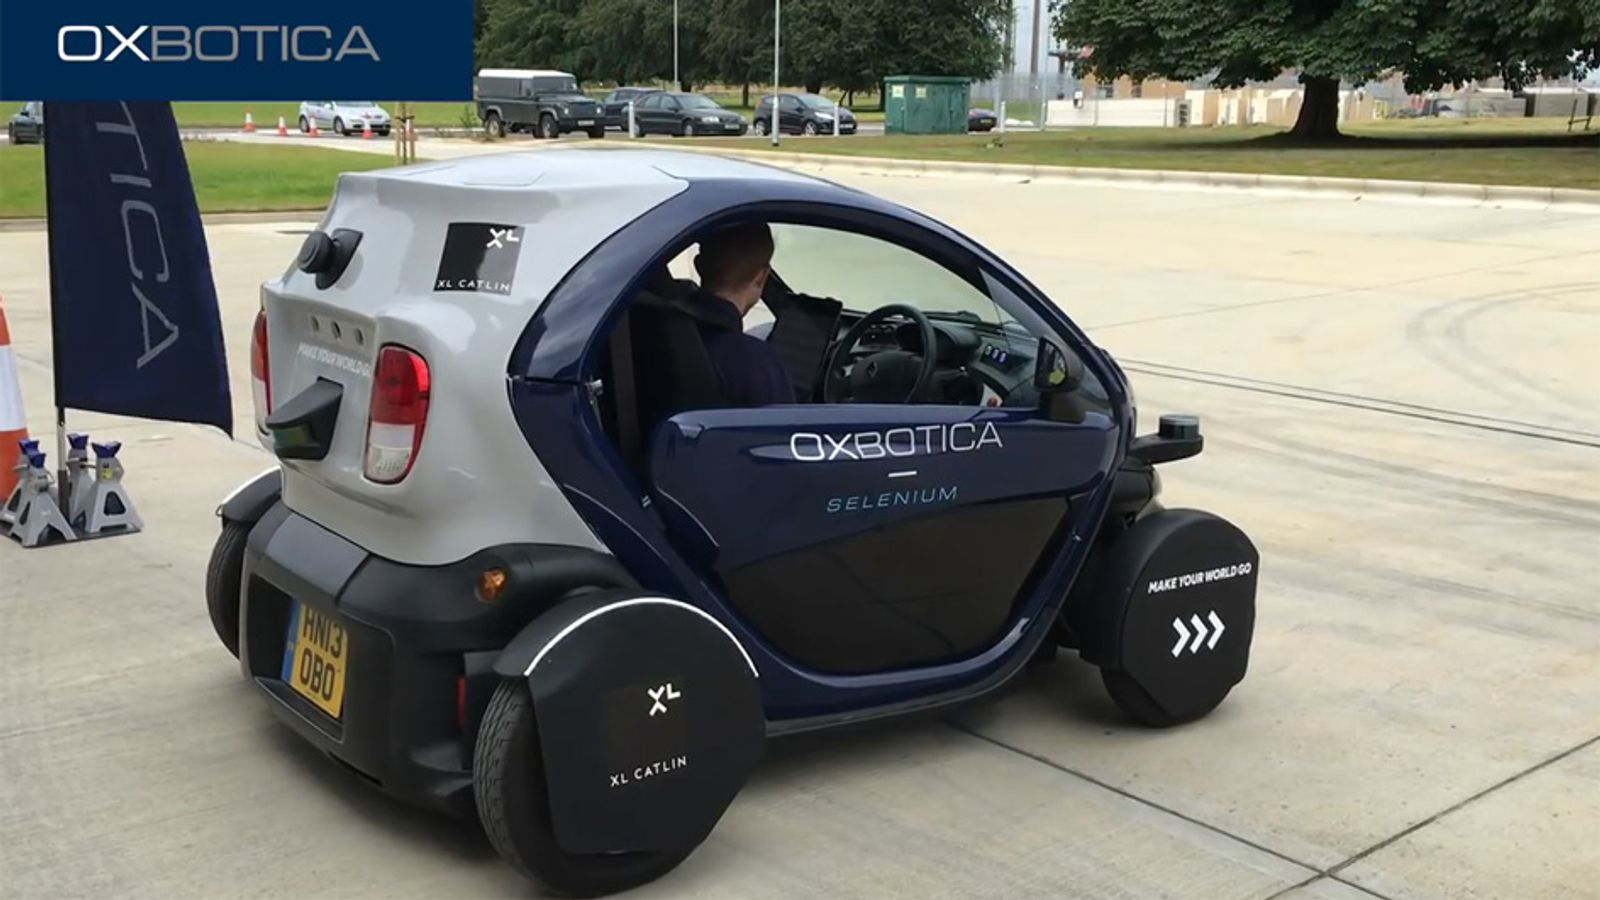 Public trial for driverless cars beginning in Milton Keynes